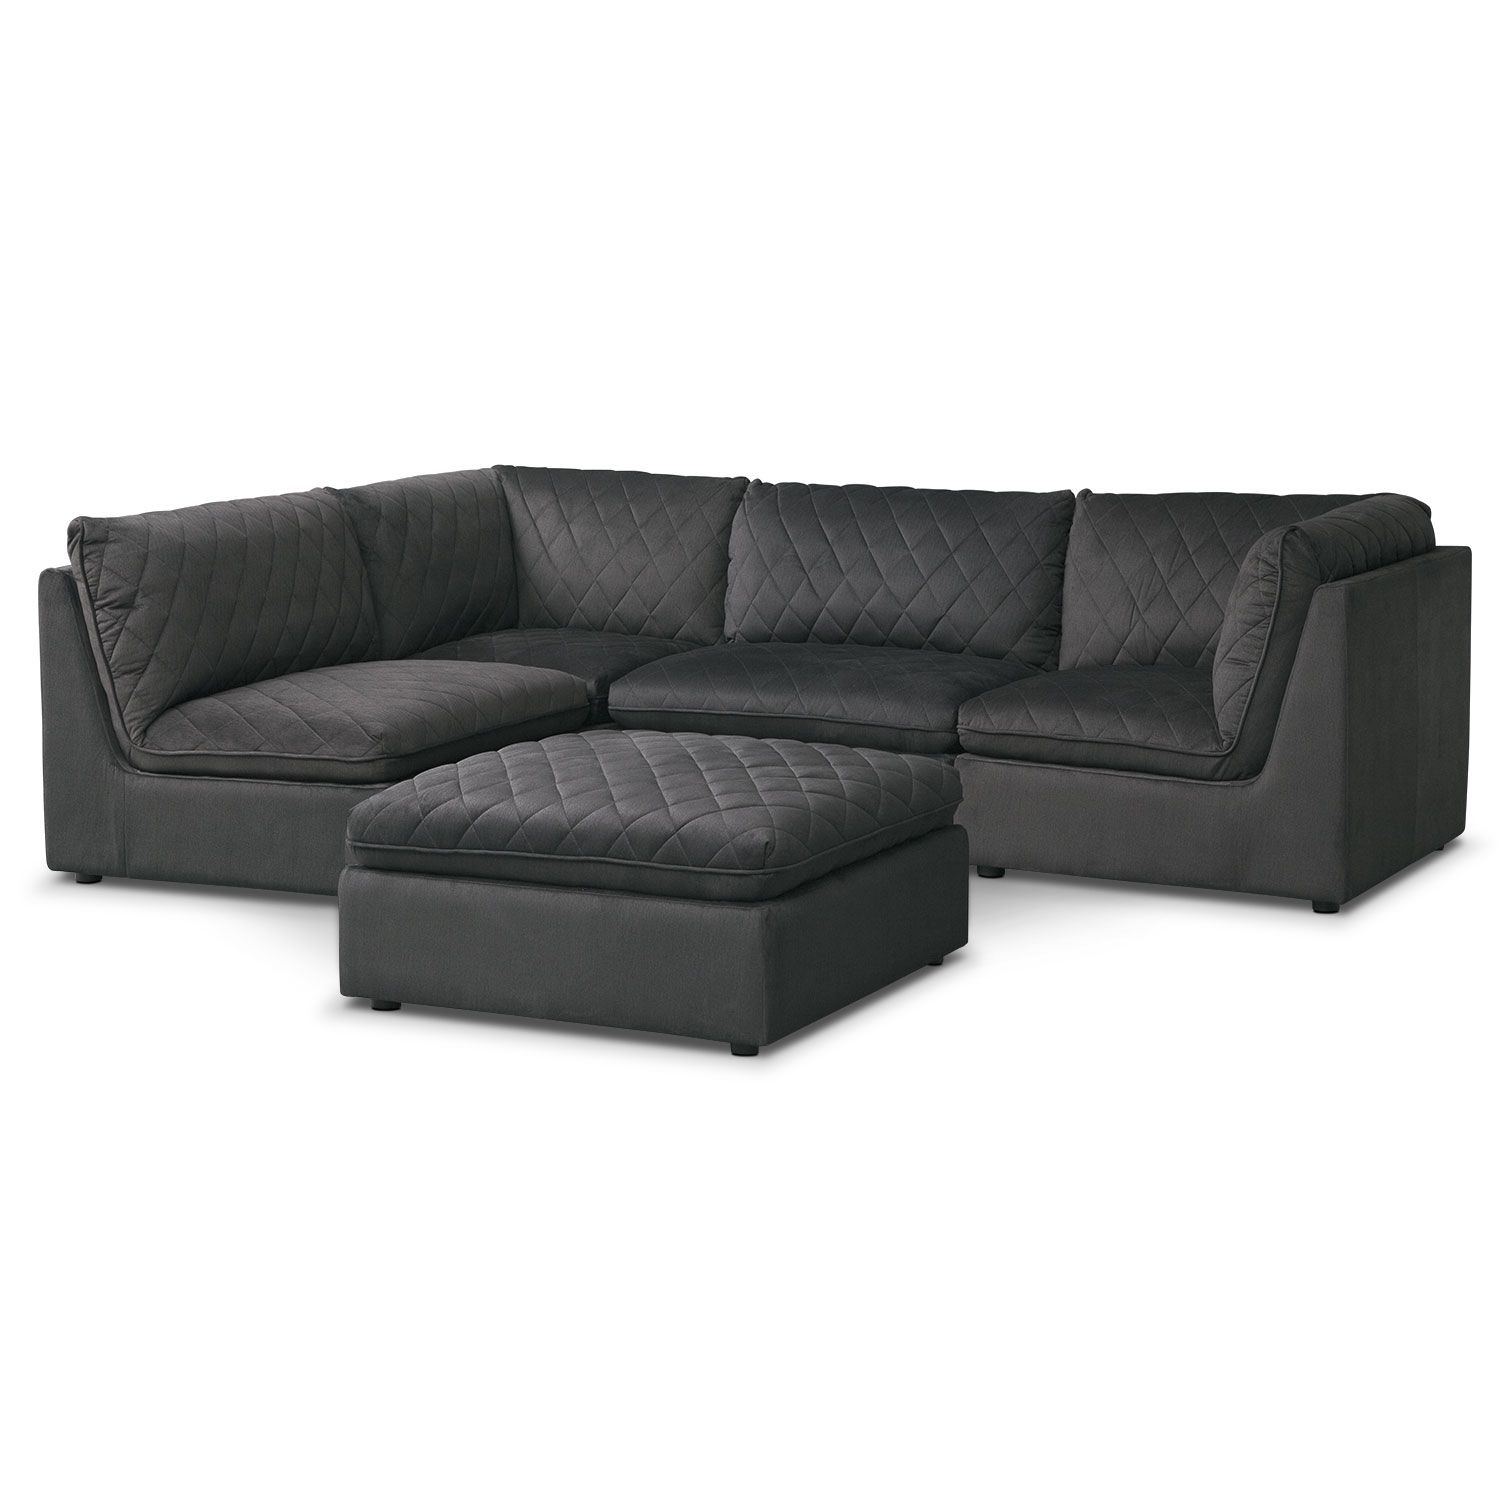 Outstanding Coco Charcoal 4 Piece Sectional With Cocktail Ottoman Machost Co Dining Chair Design Ideas Machostcouk